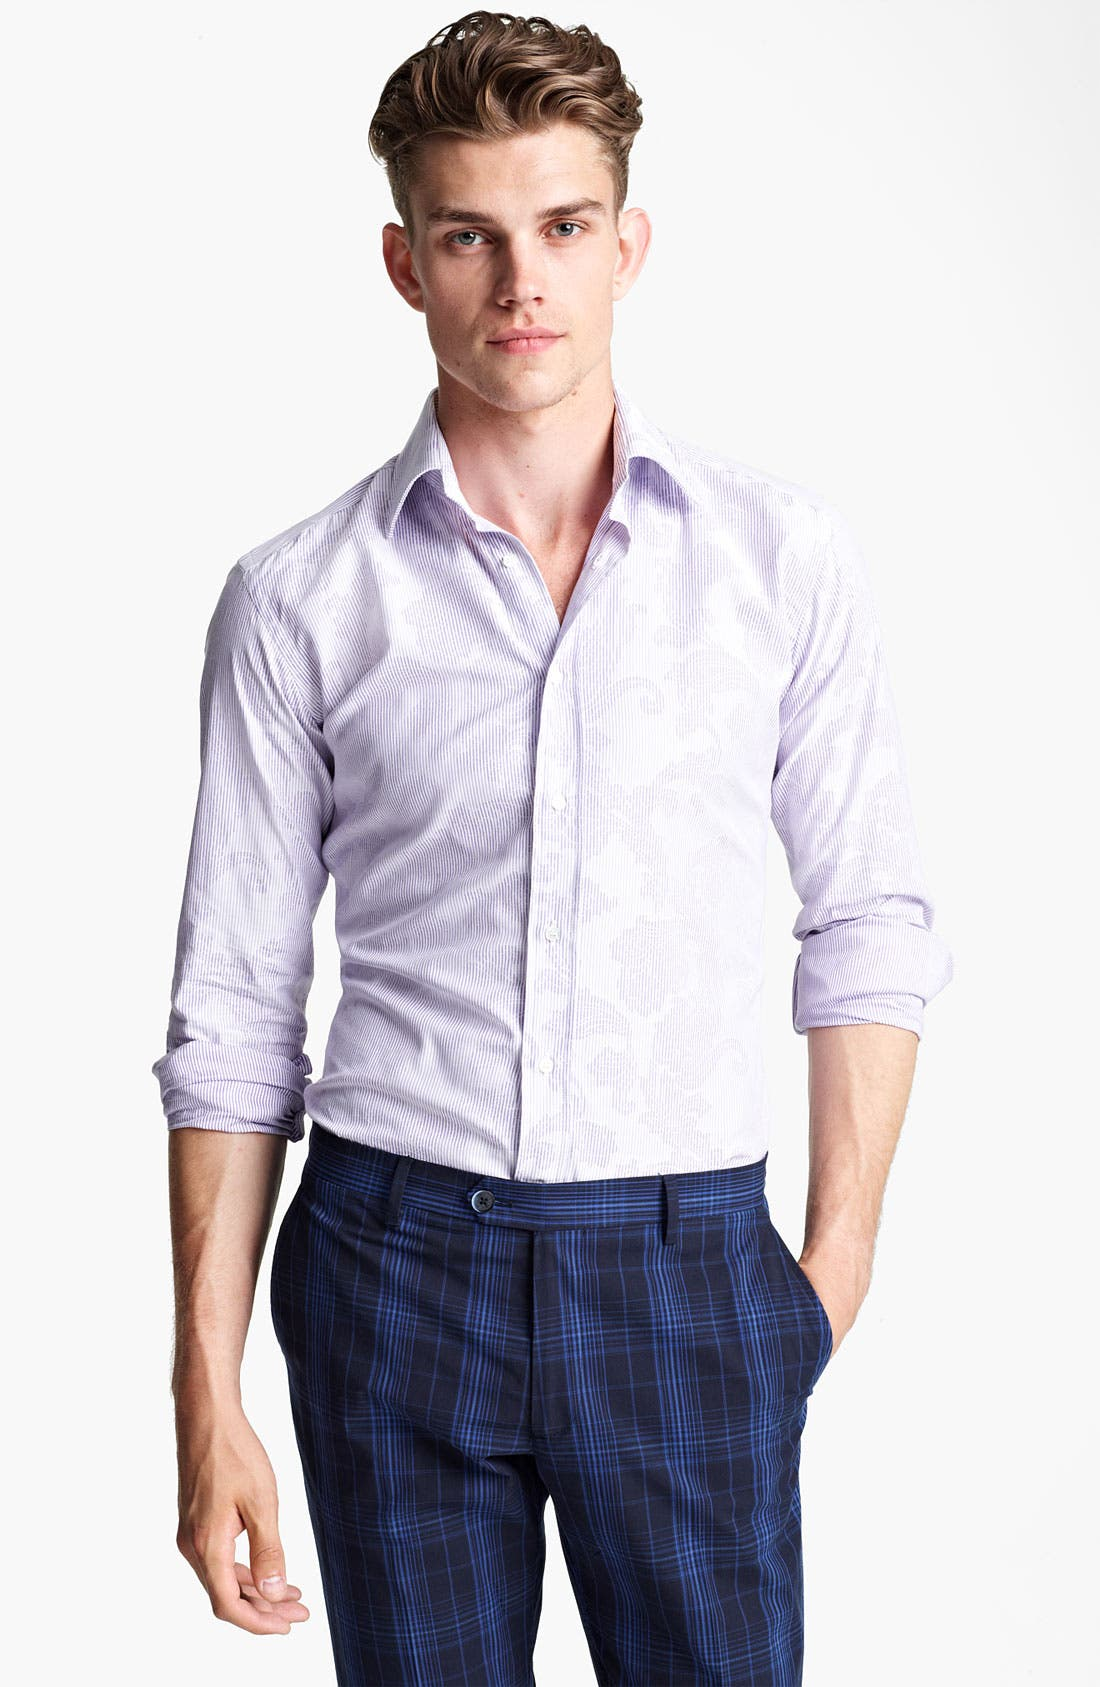 Main Image - Etro Pinstripe Jacquard Print Dress Shirt